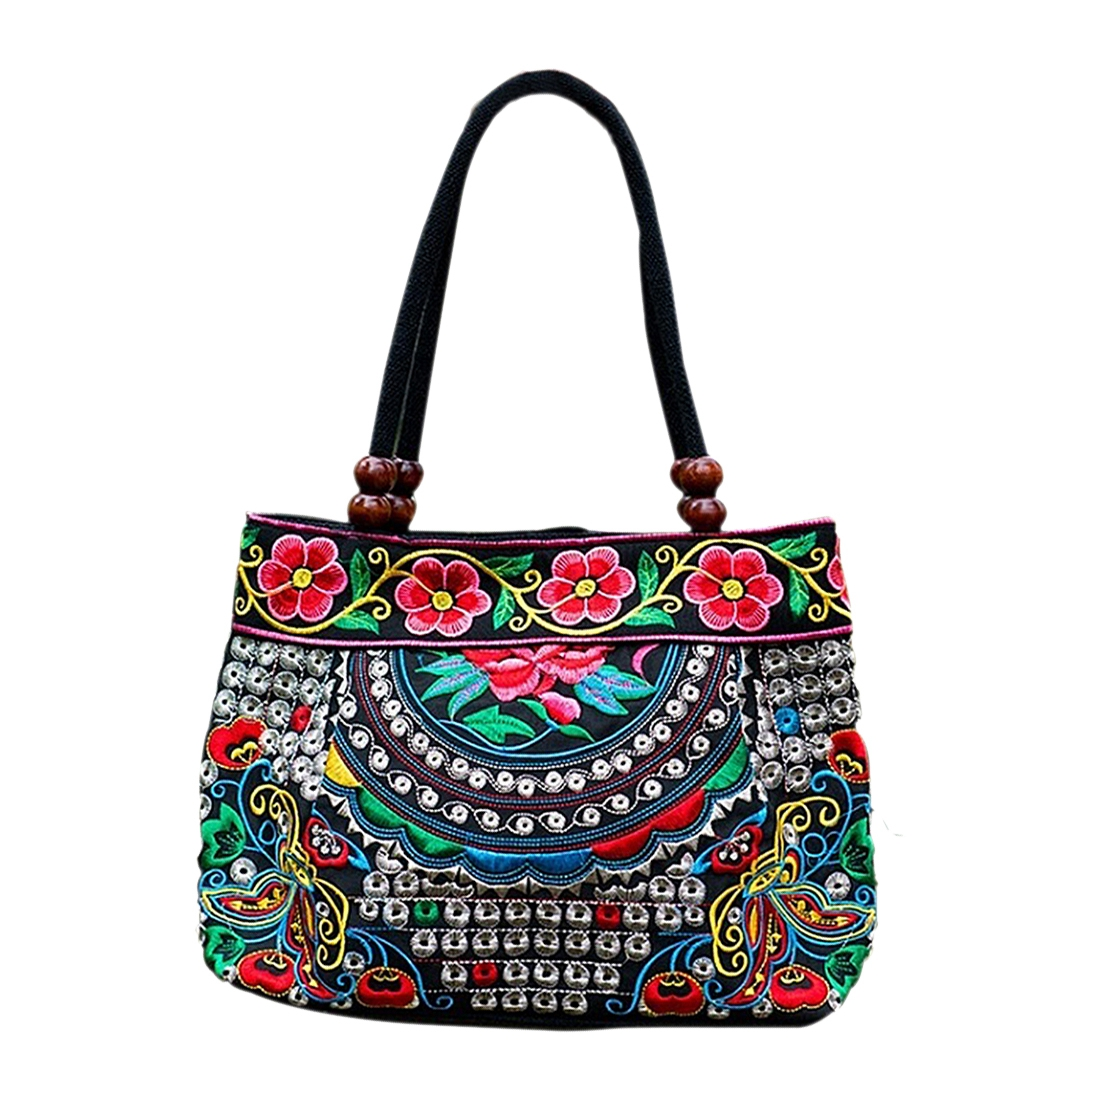 Chinese Style Women Handbag Embroidery Ethnic Summer Fashion Handmade Flowers Ladies Tote Shoulder Bags Cross-body  Butterfly 2016 summer national ethnic style embroidery bohemia design tassel beads lady s handbag meessenger bohemian shoulder bag